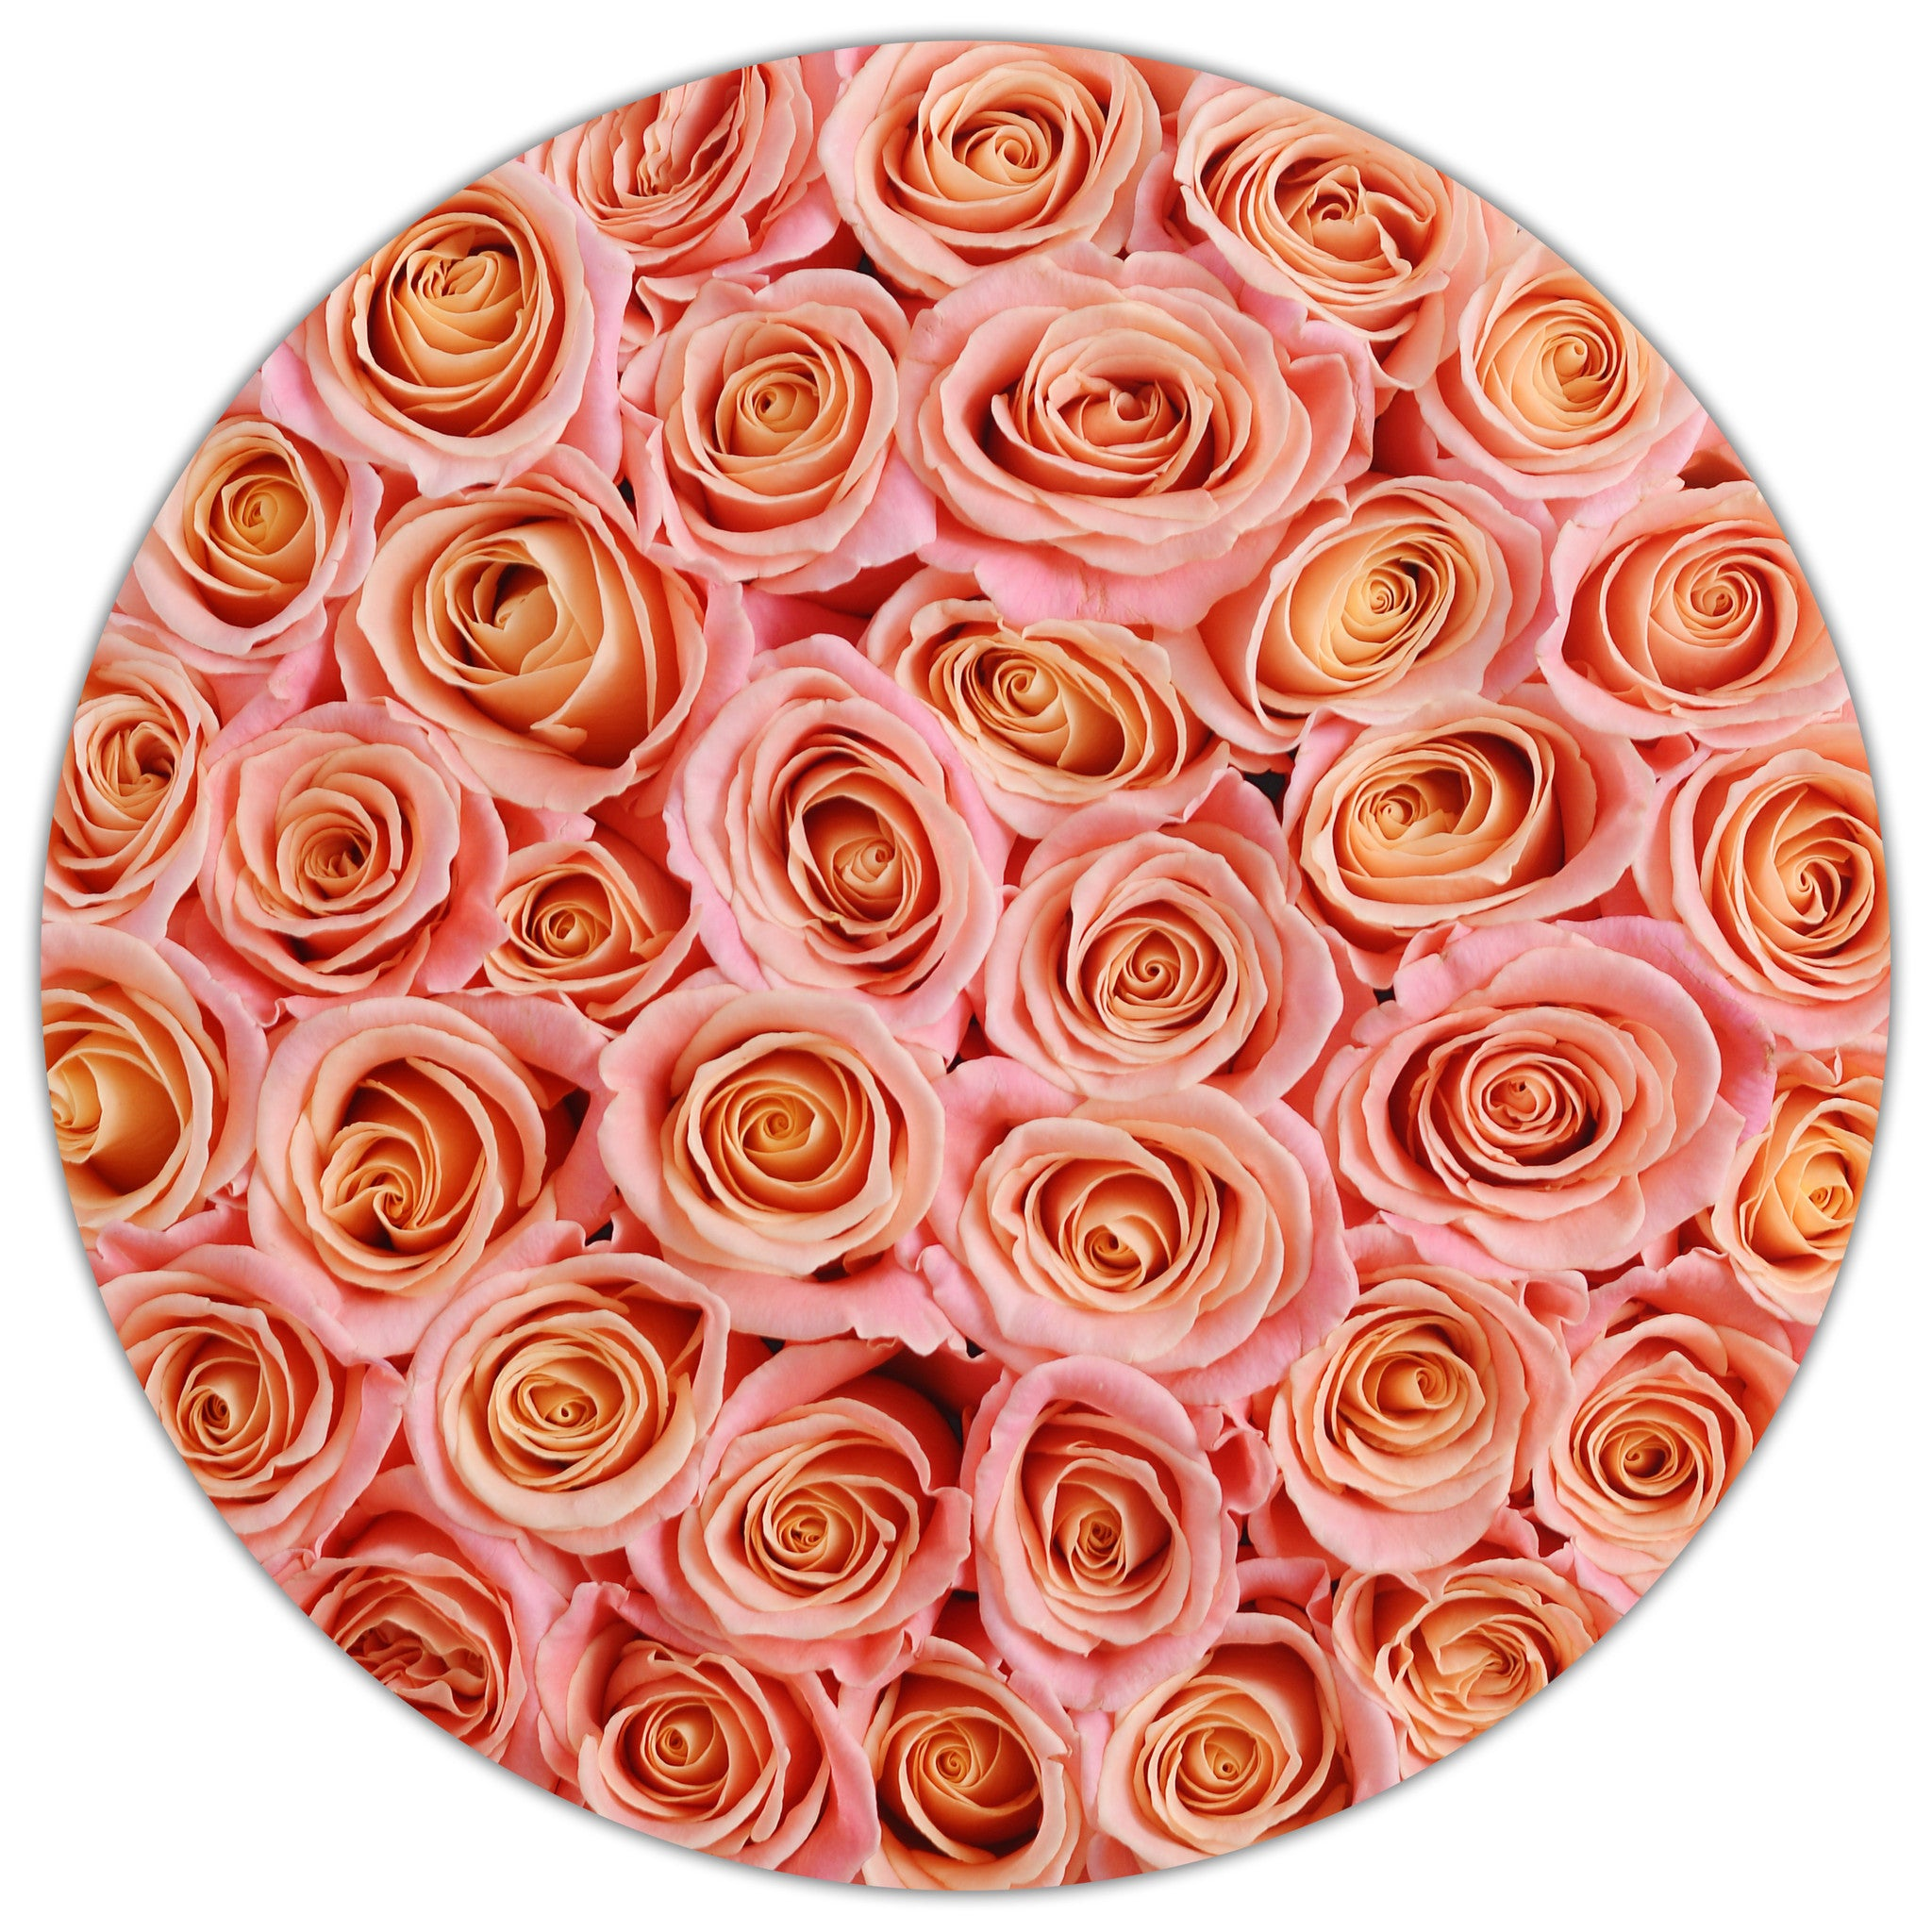 Medium - Peach Roses - Black Box - The Million Roses Budapest